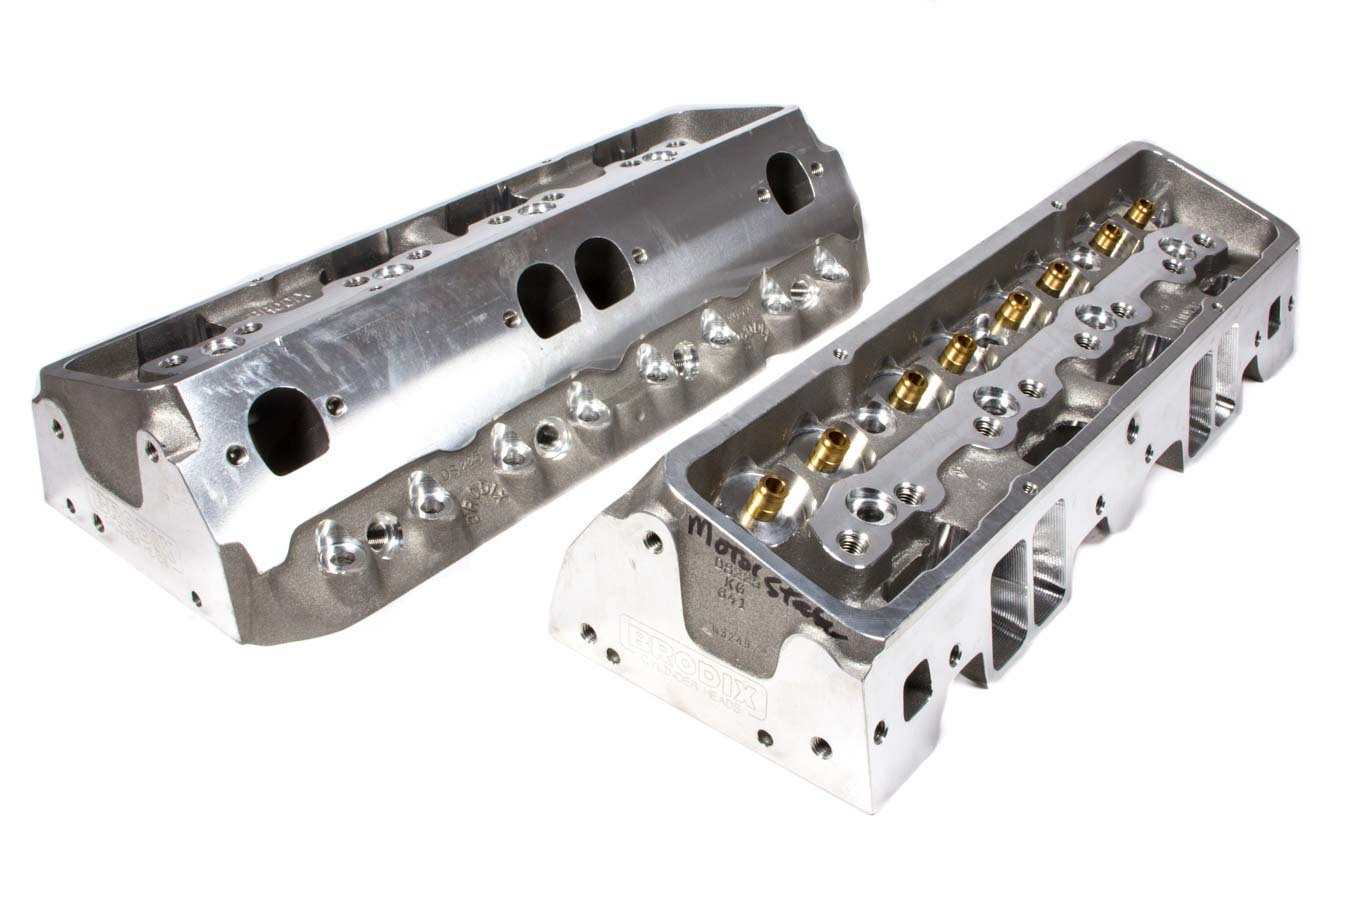 Brodix 1320000 Cylinder Head, DS 225, Bare, 2.080 / 1.600 in Valves, 225 cc Intake, 68 cc Chamber, Aluminum, Small Block Chevy, Pair